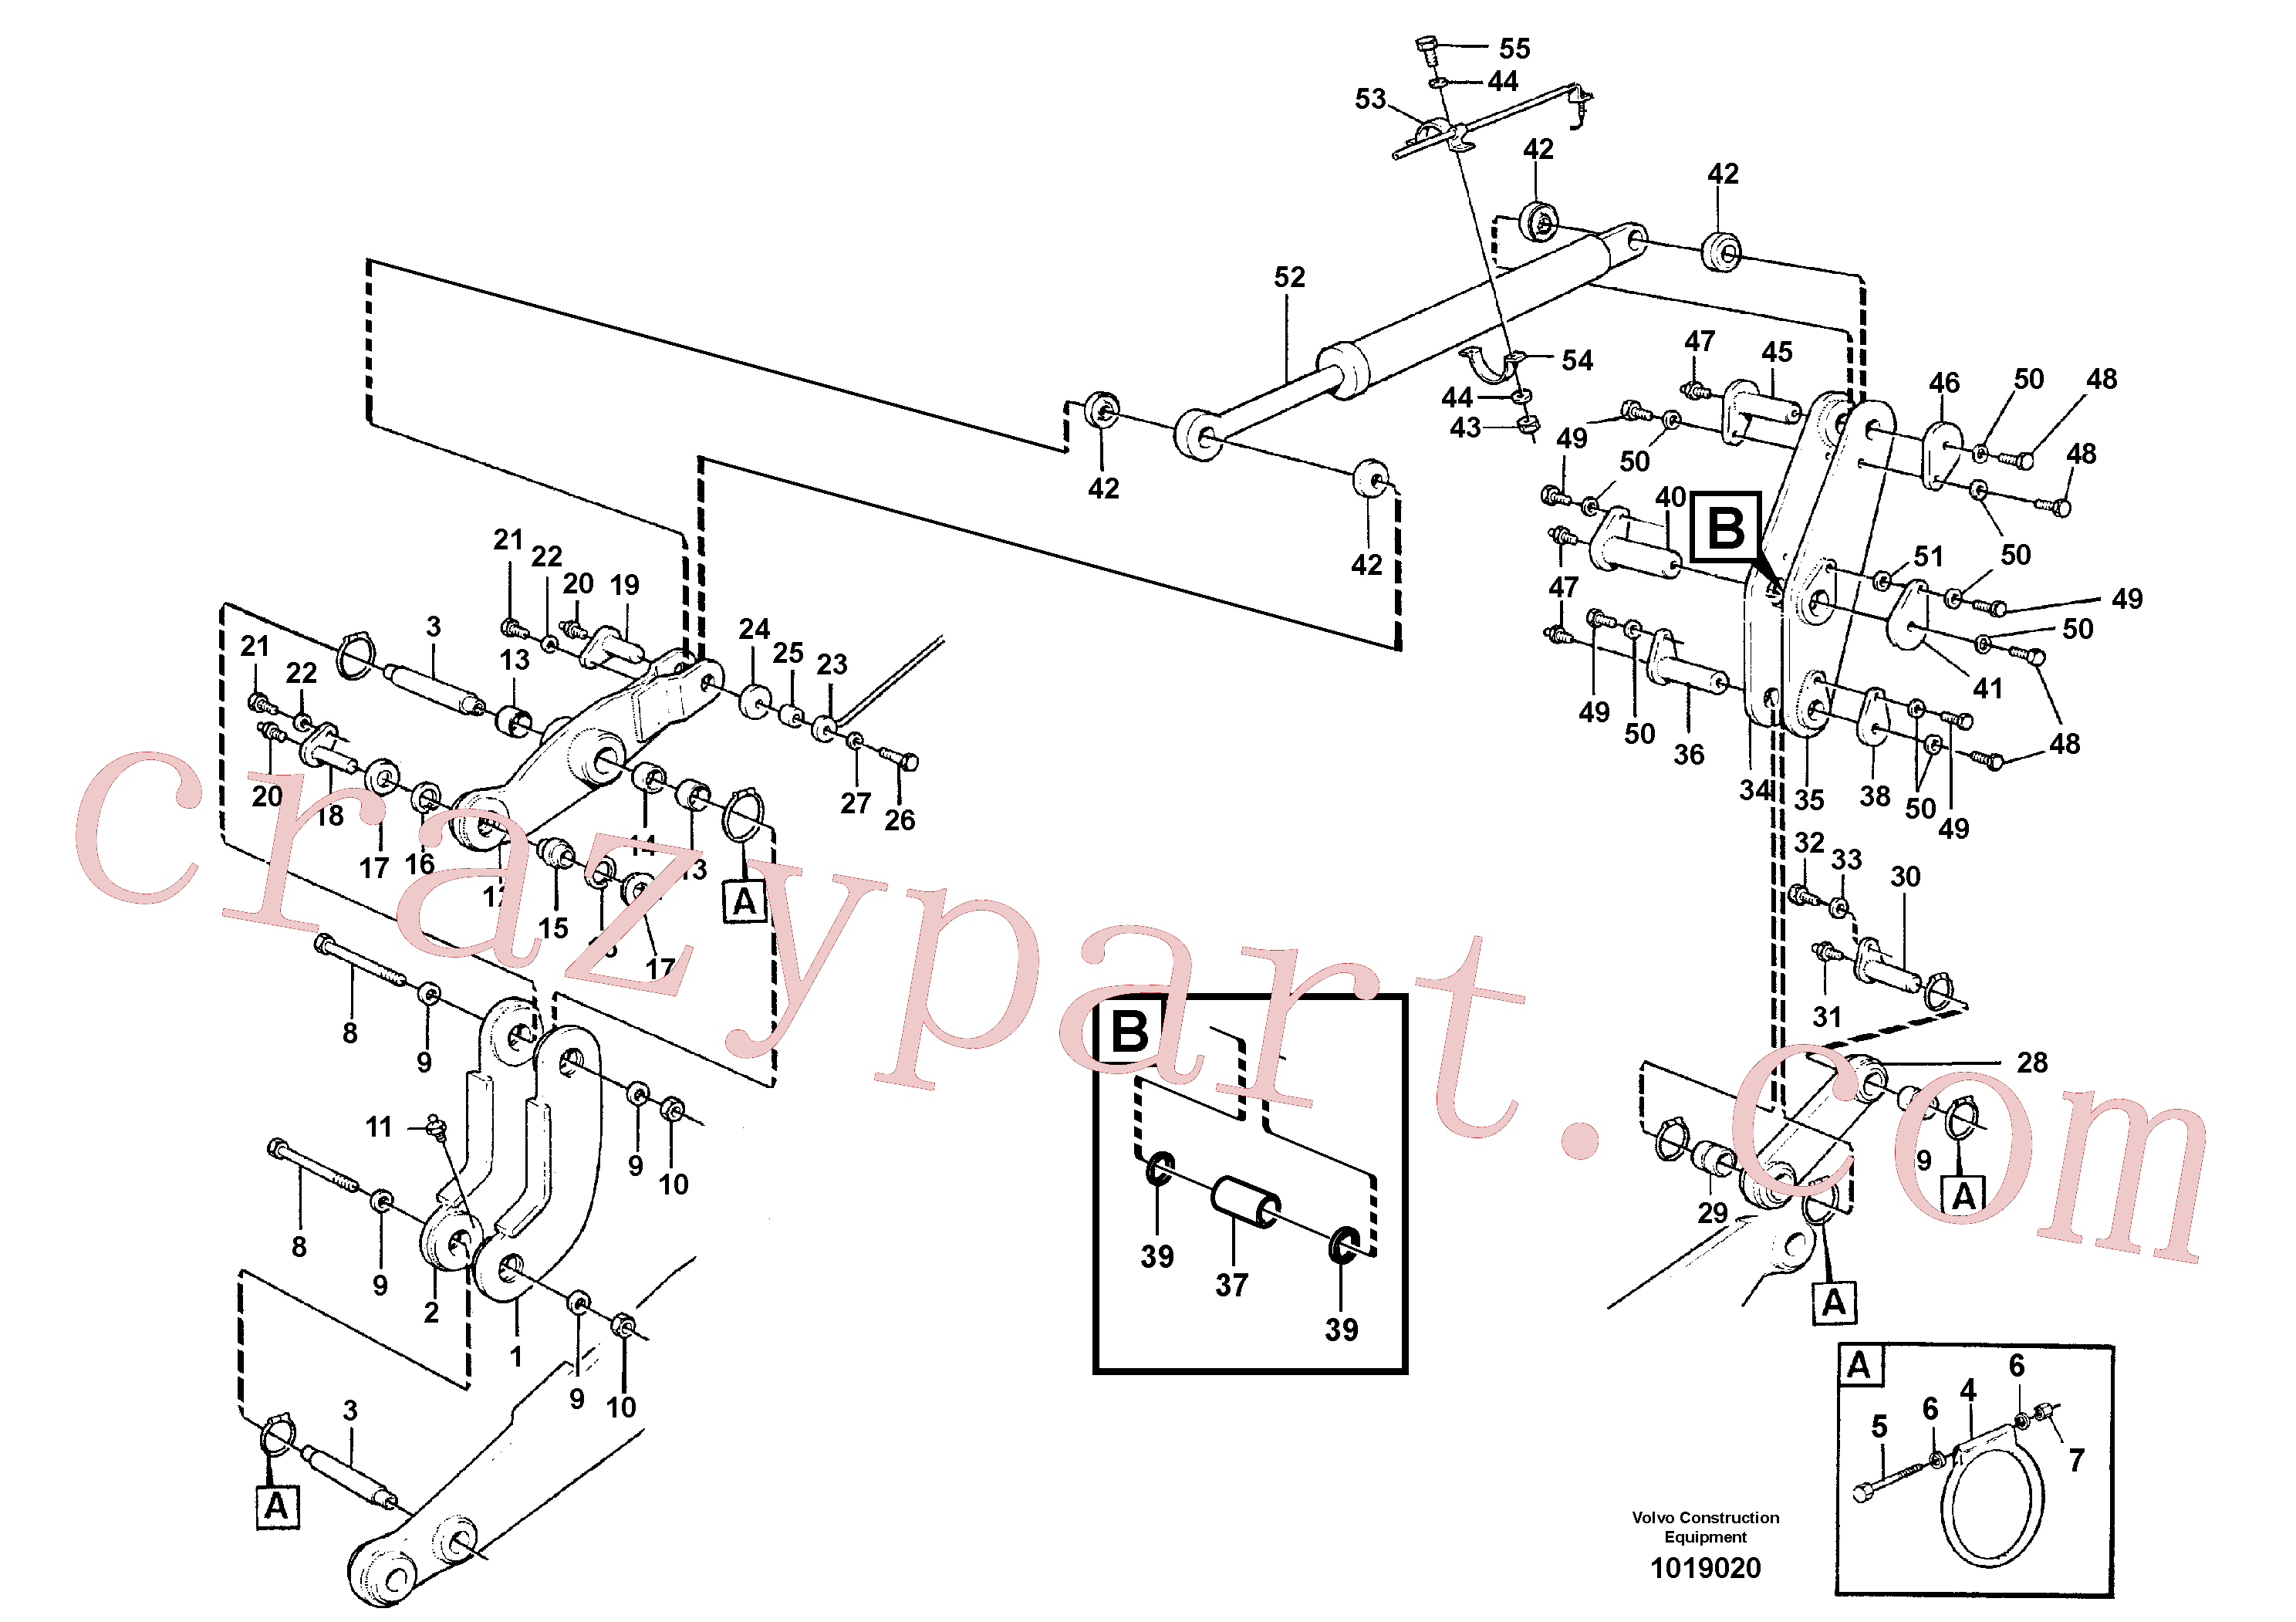 VOE4782563 for Volvo Links with fitting parts(1019020 assembly)